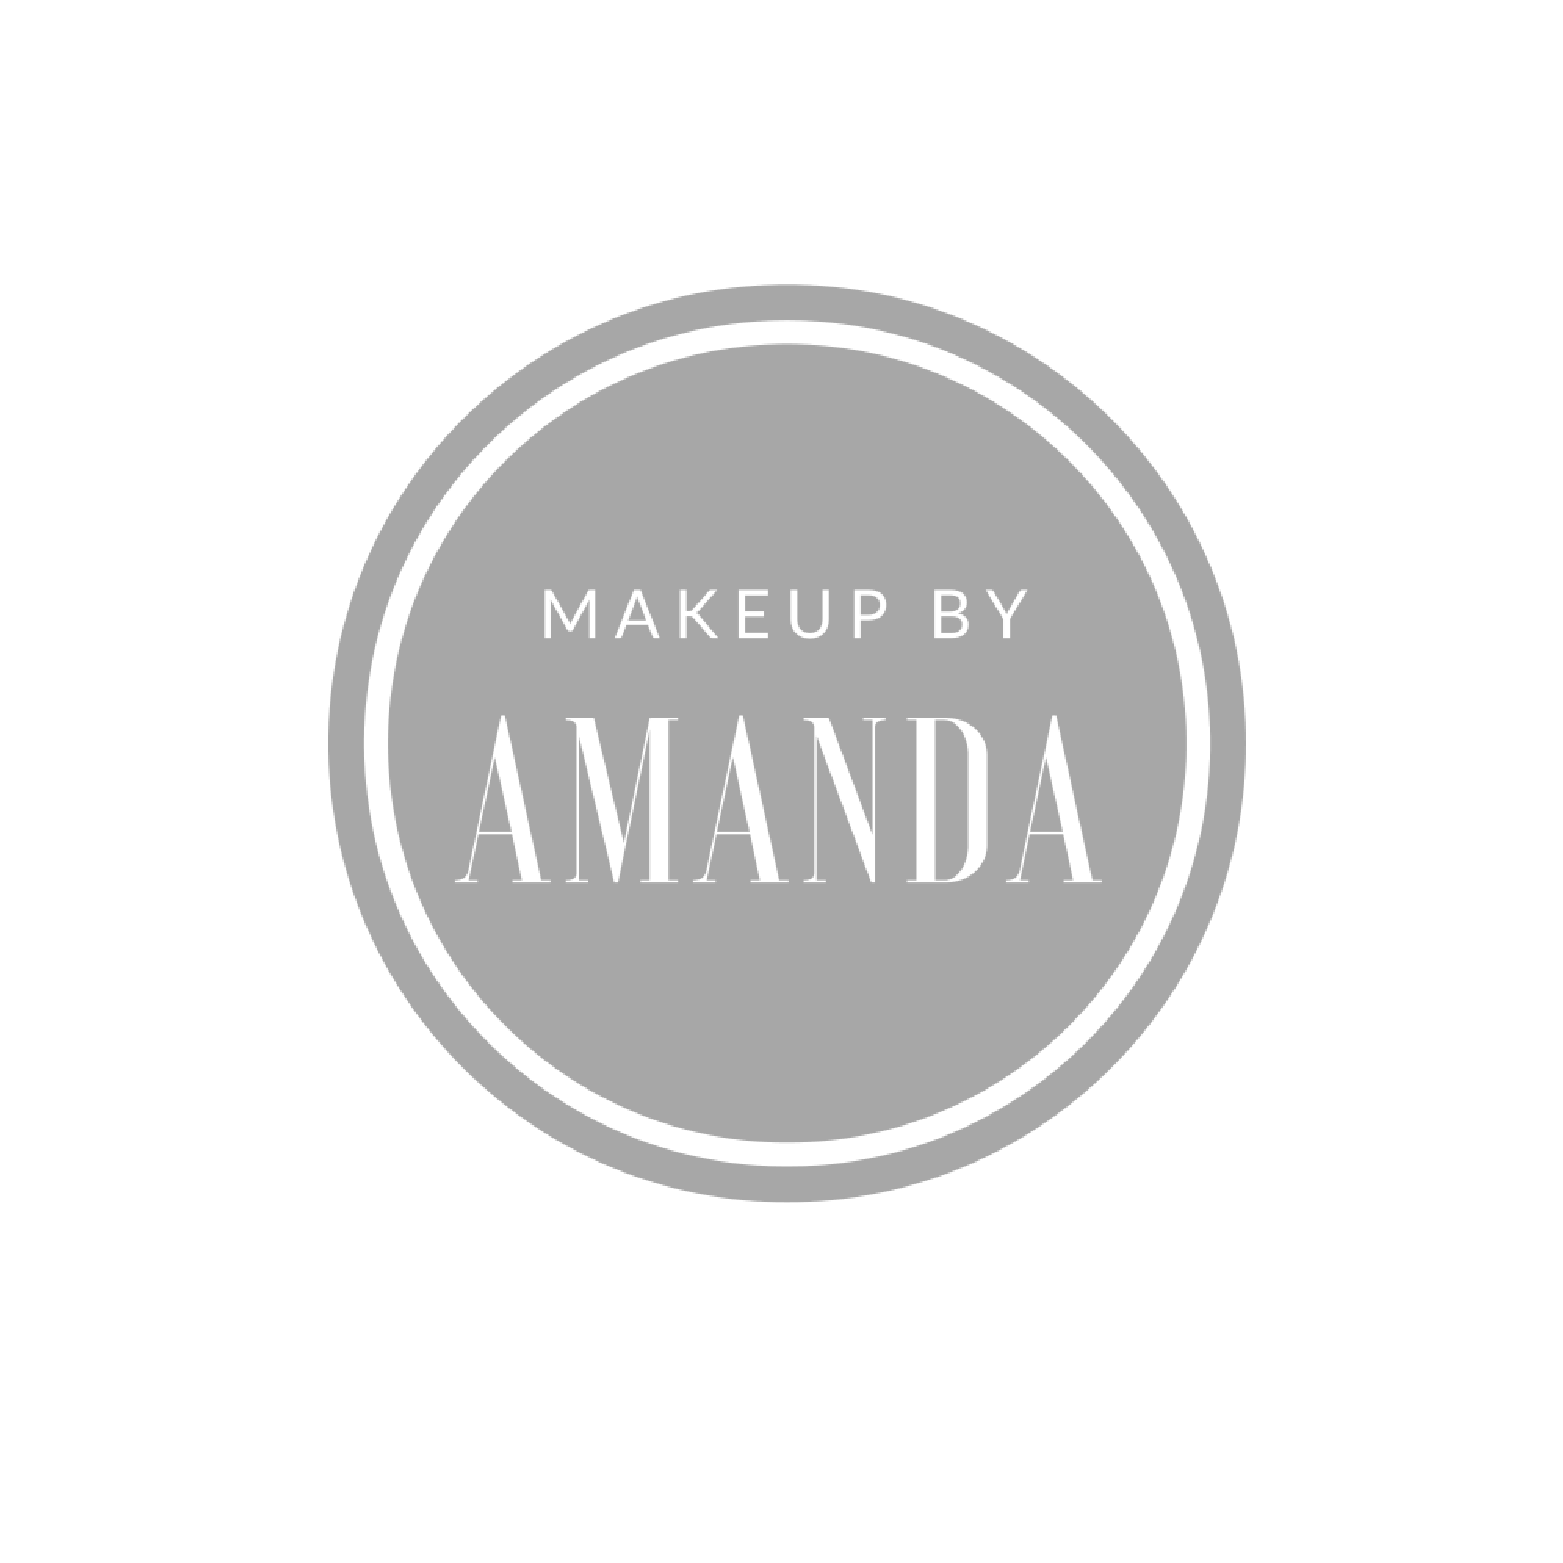 MAKEUp By-12.png